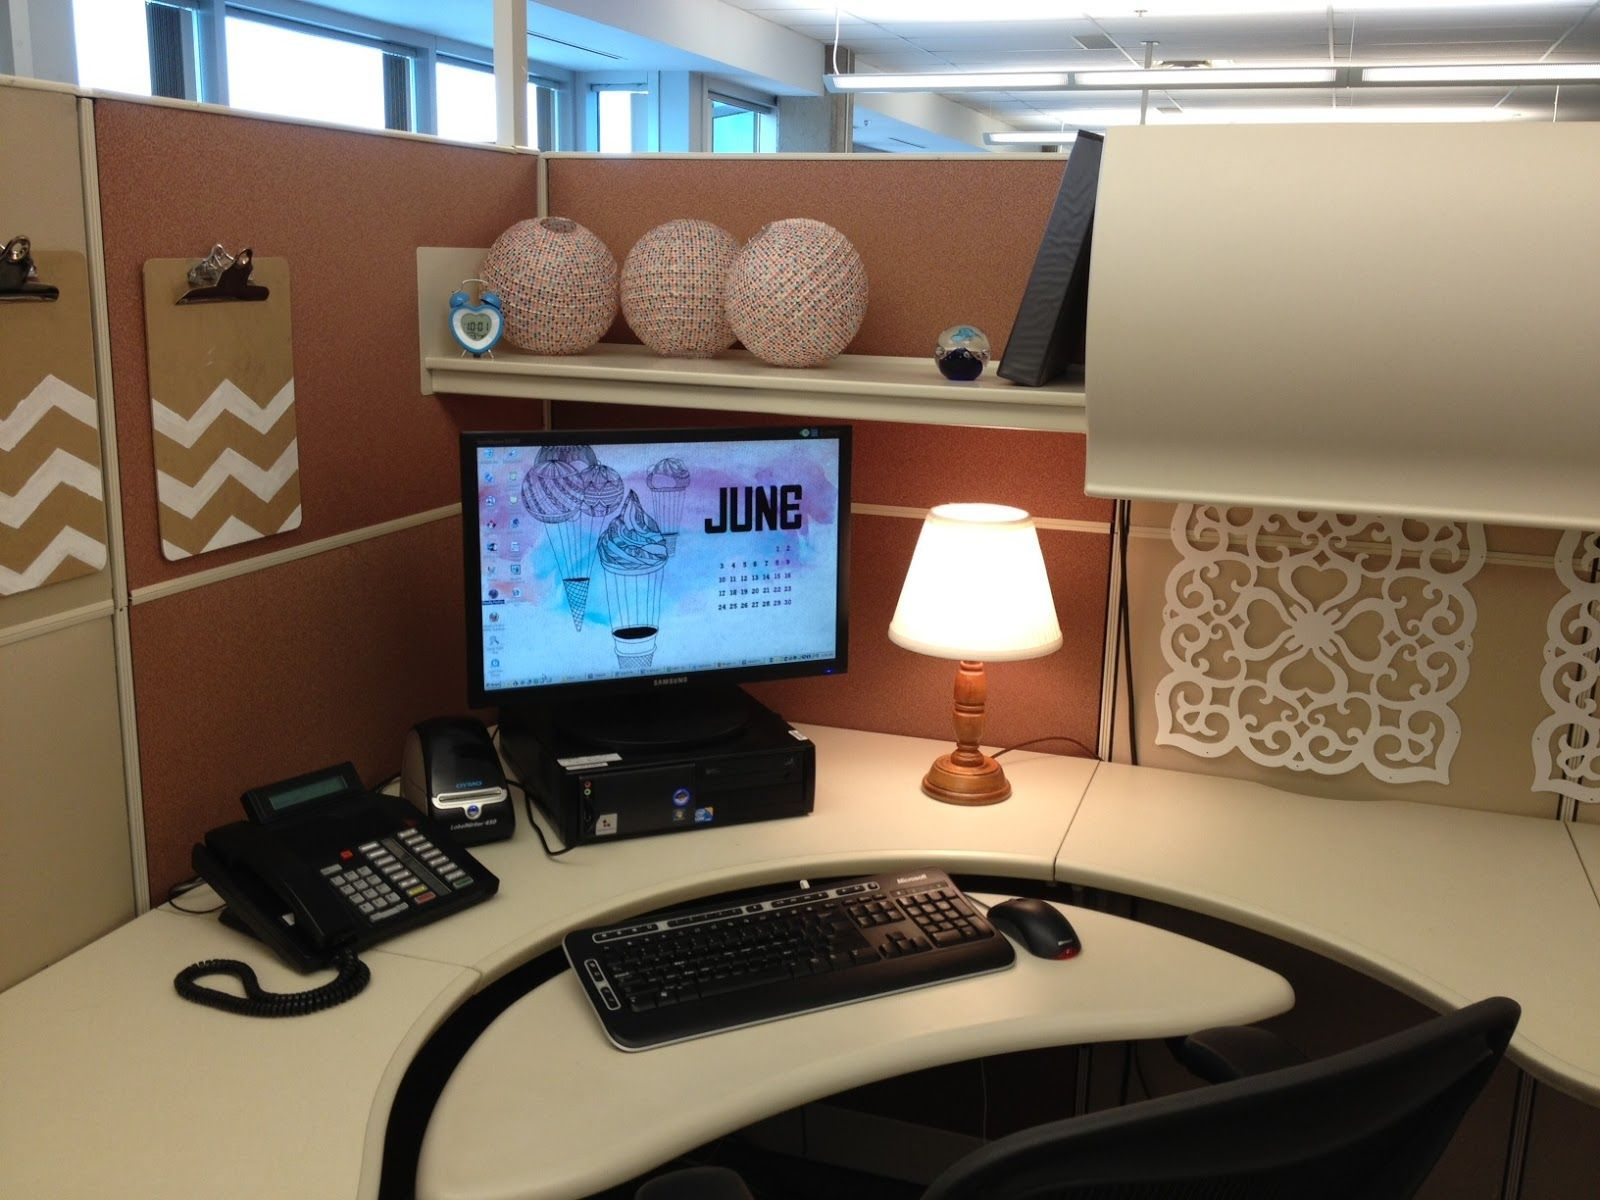 Cubicle Decorating Ideas Enchanting 20 Cubicle Decor Ideas To Make Your Office Style Work As Hard As Decorating Design